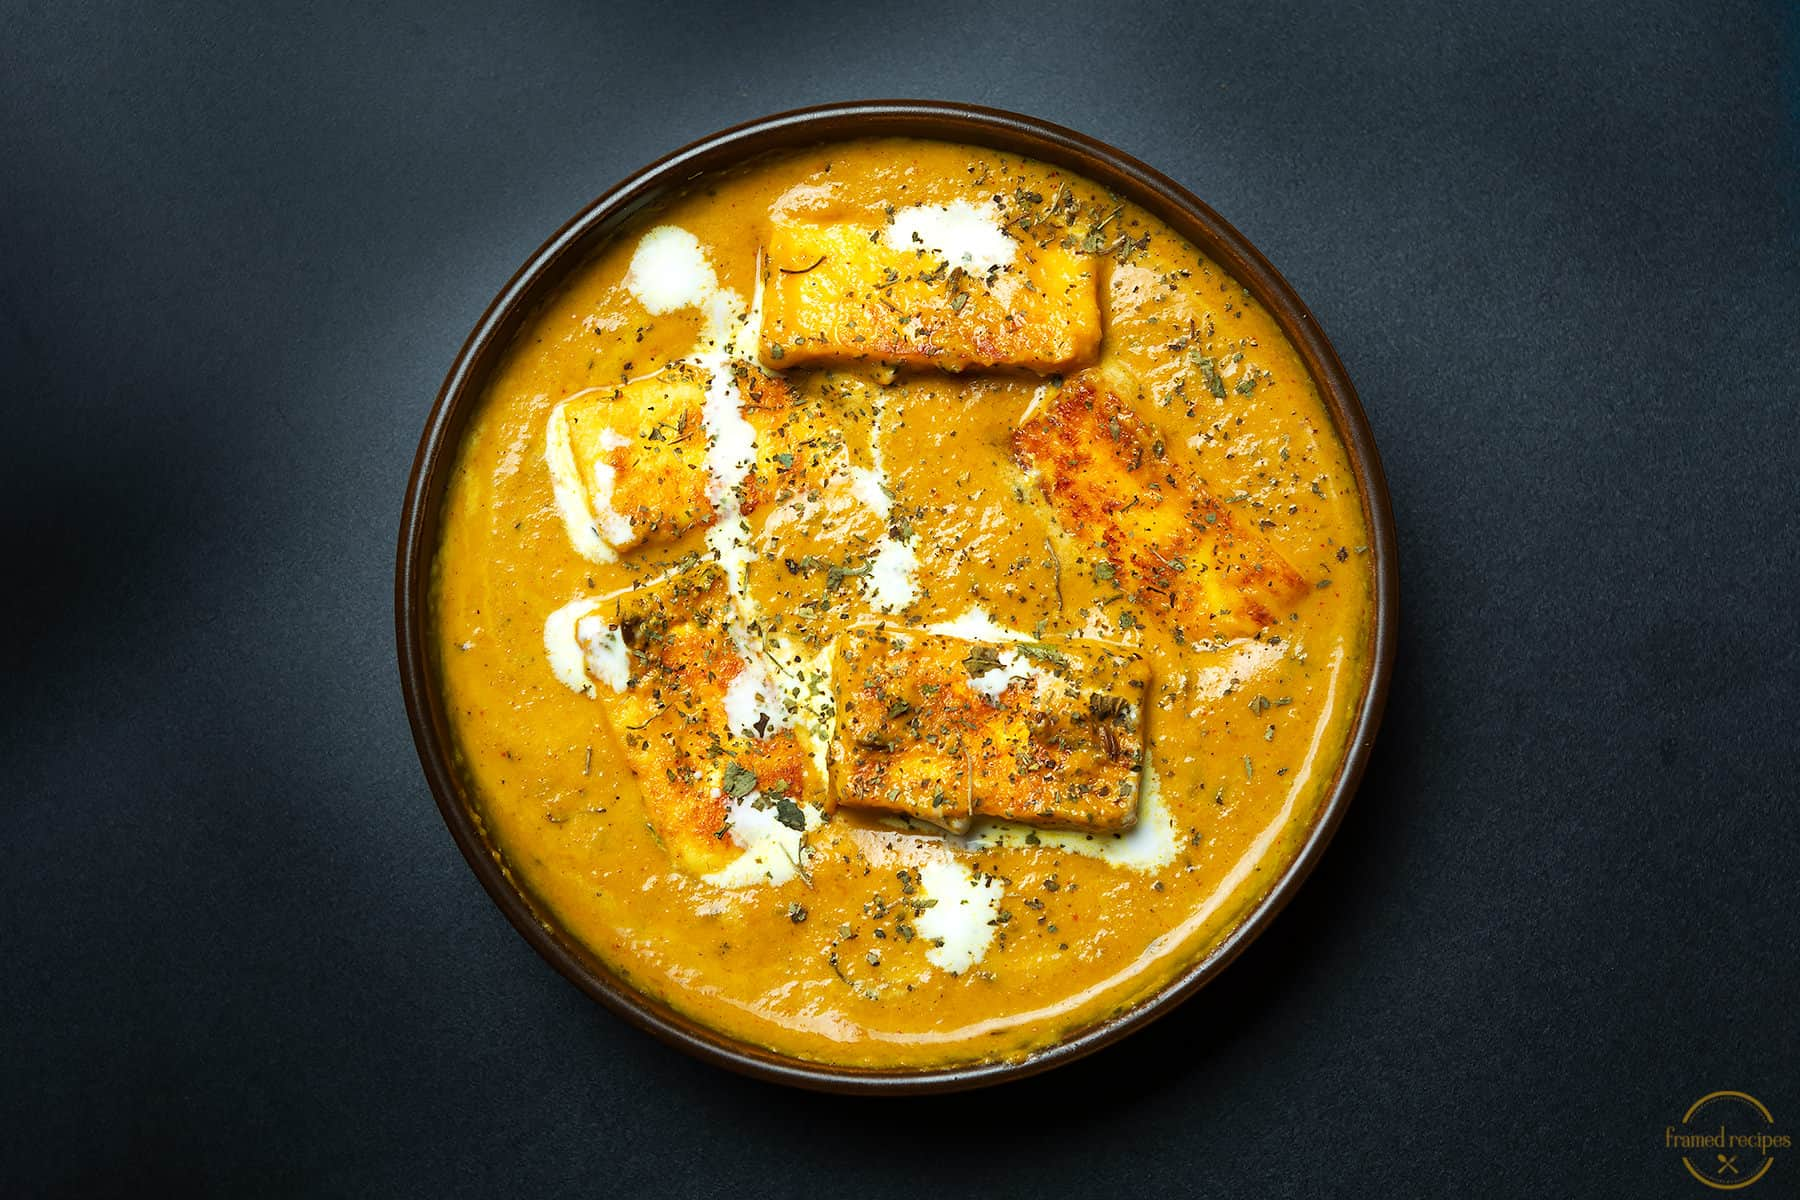 lasooni paneer - delicious paneer curry with aromatic spices and garlic.